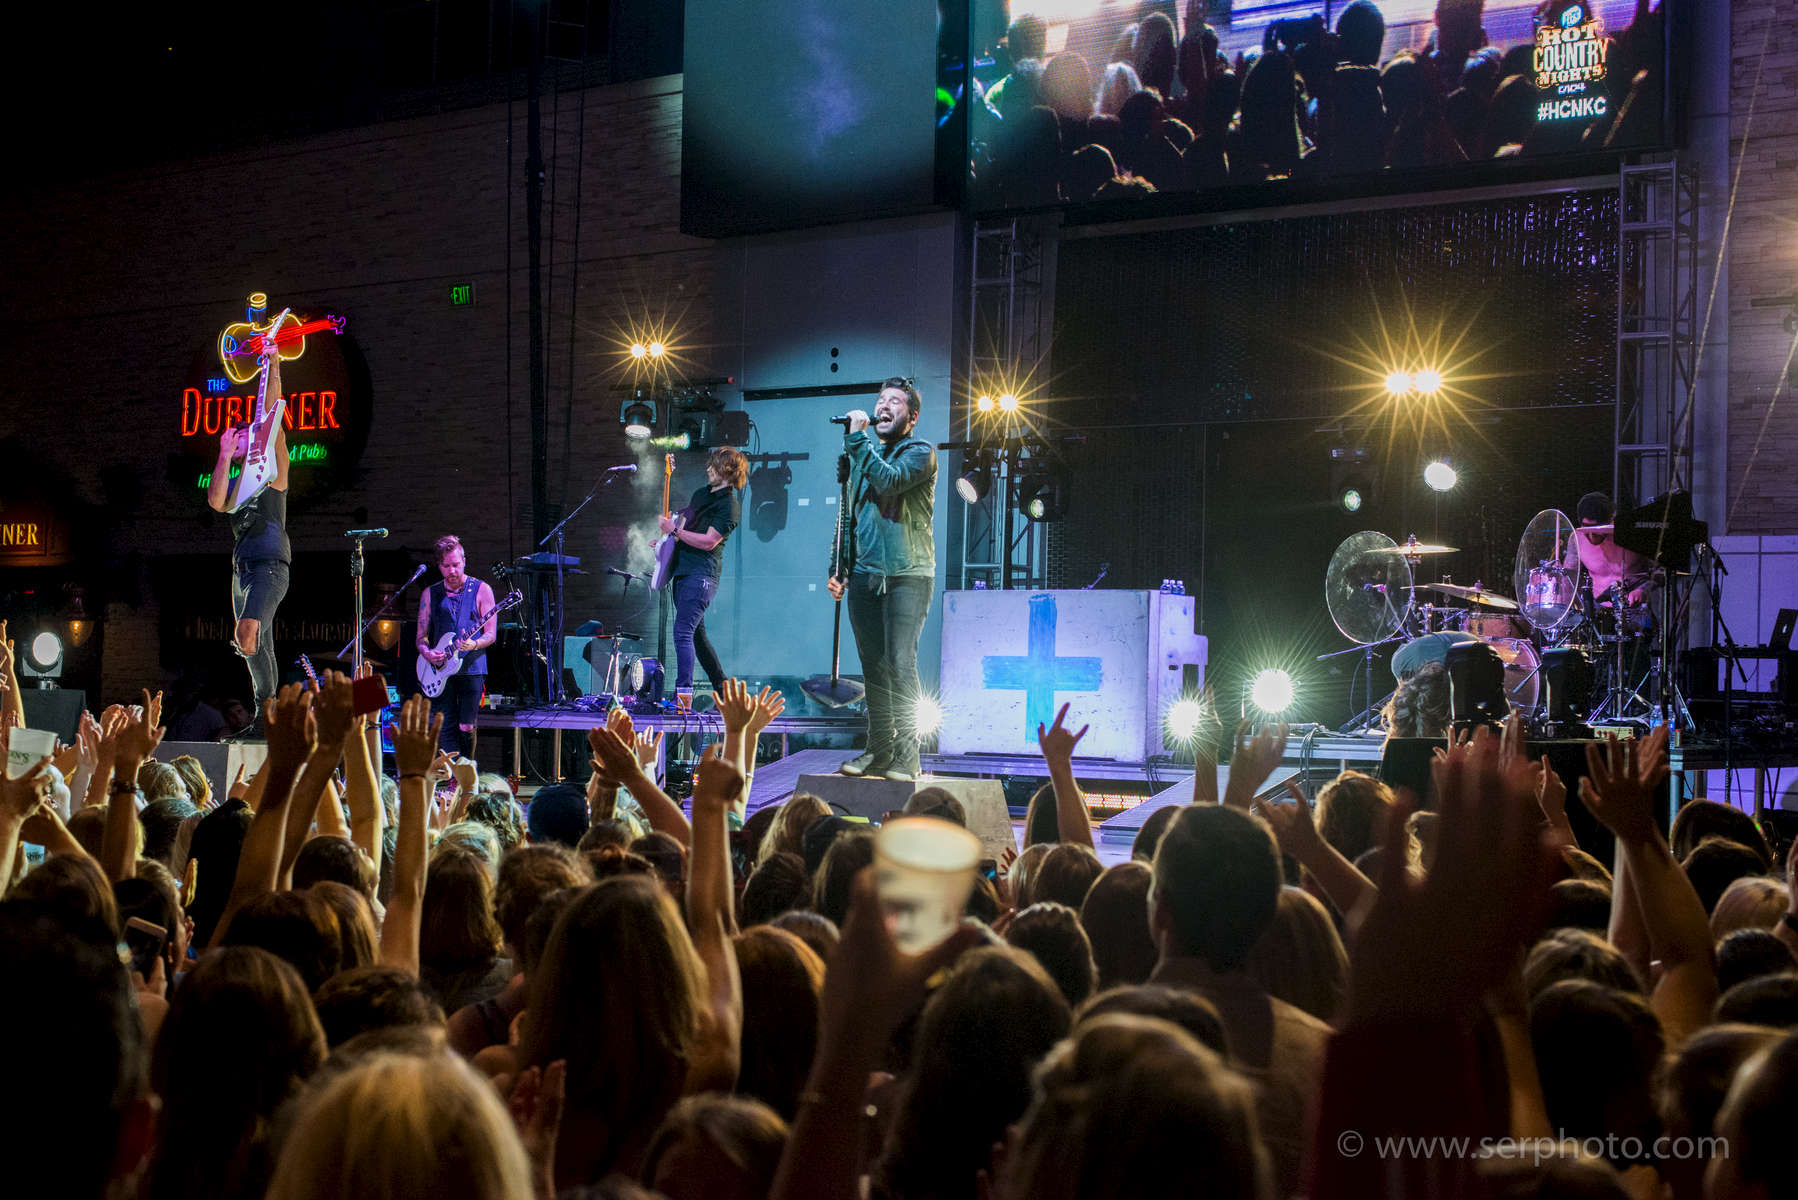 Dan-_-Shay---Scott-Reynolds-photos---2015-6-18-_249-of-435_